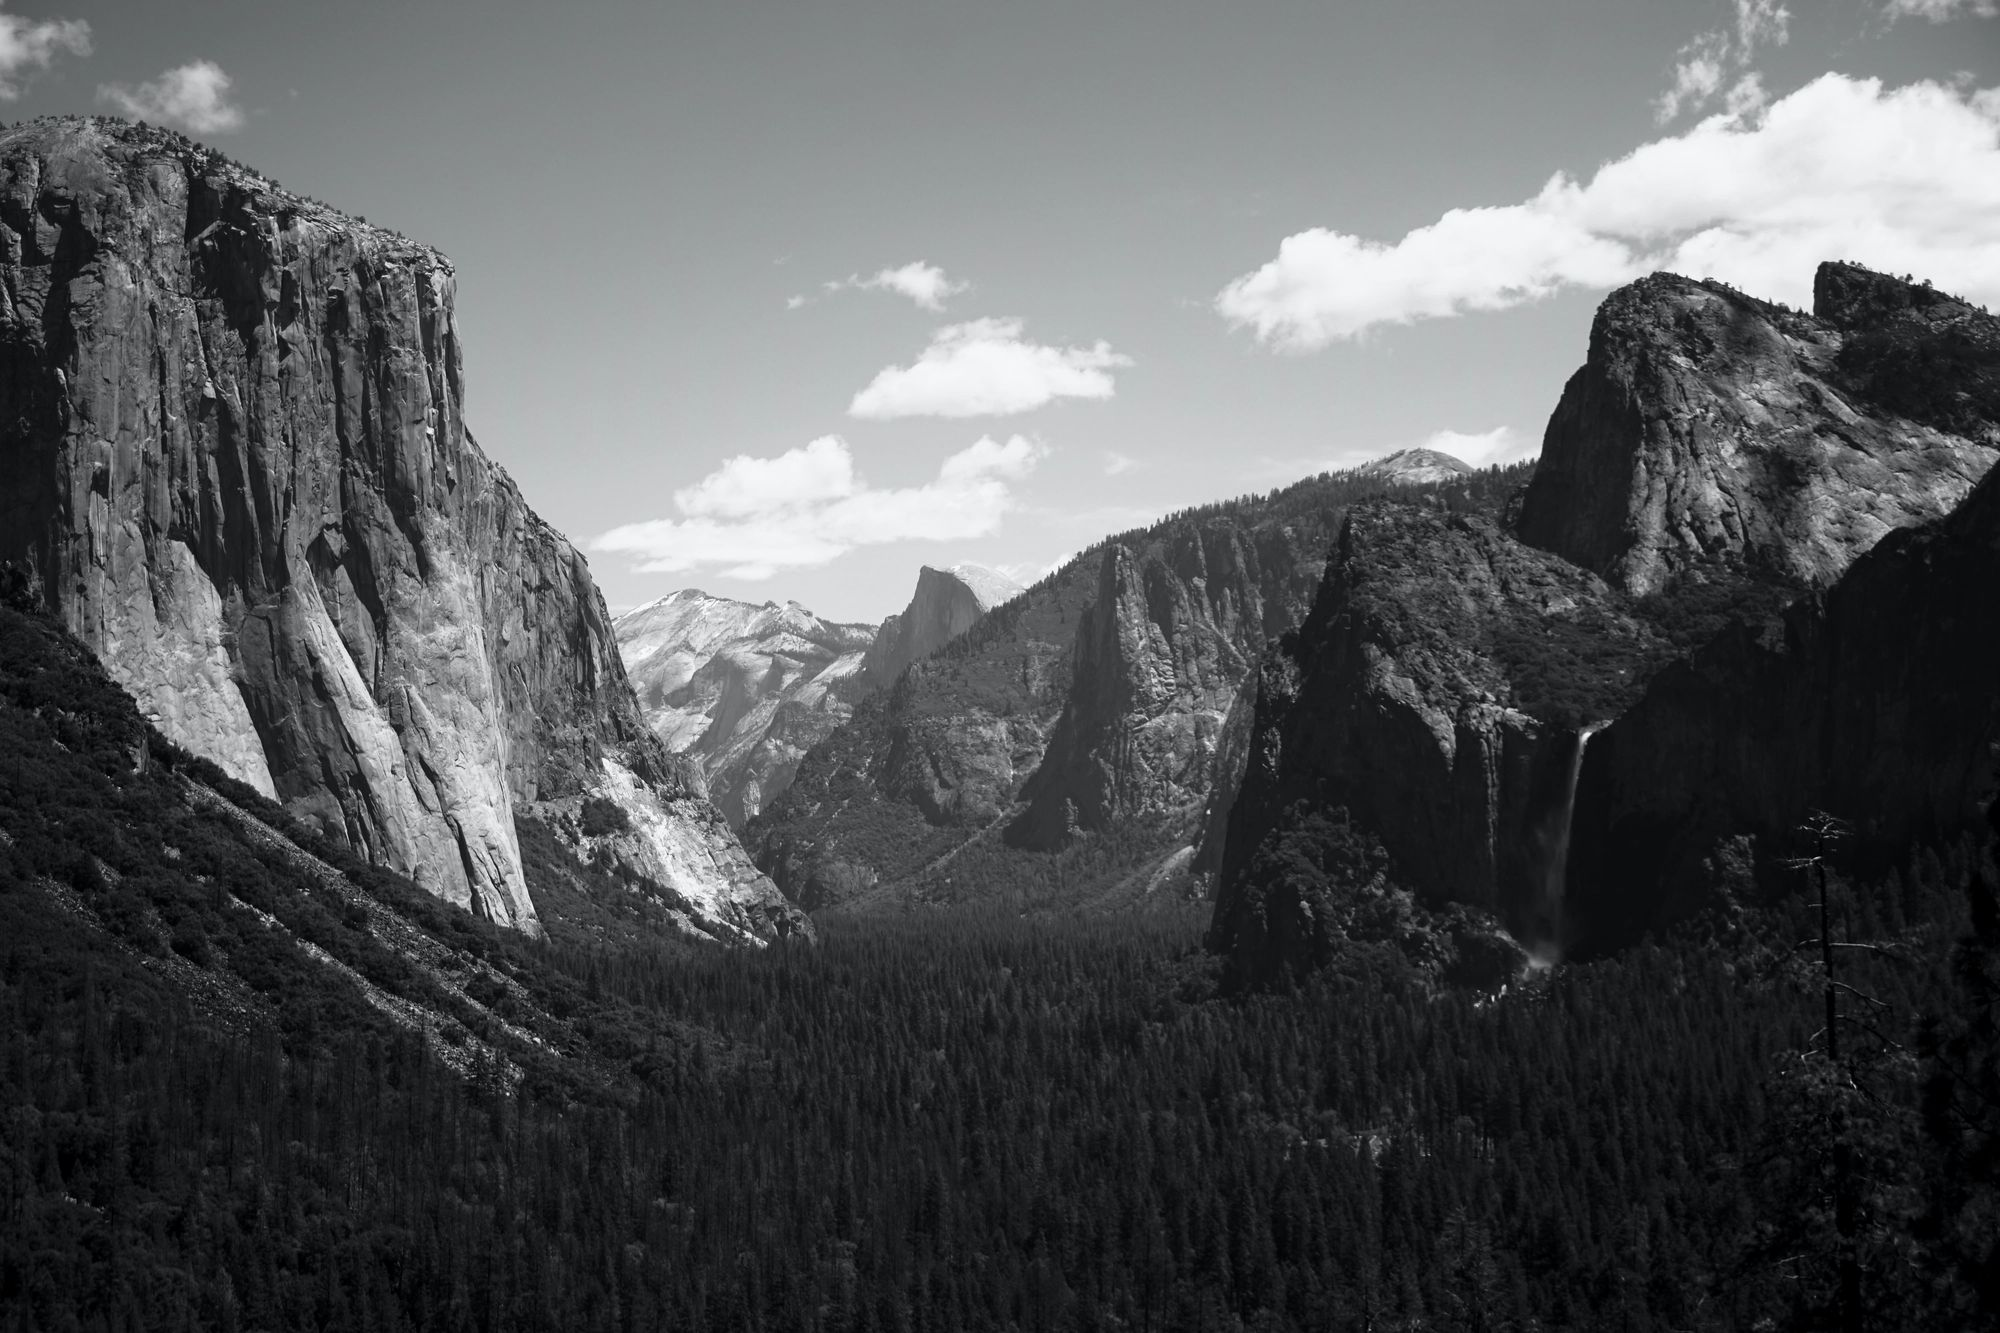 Ansel Adams was important in changing how we perceive photography